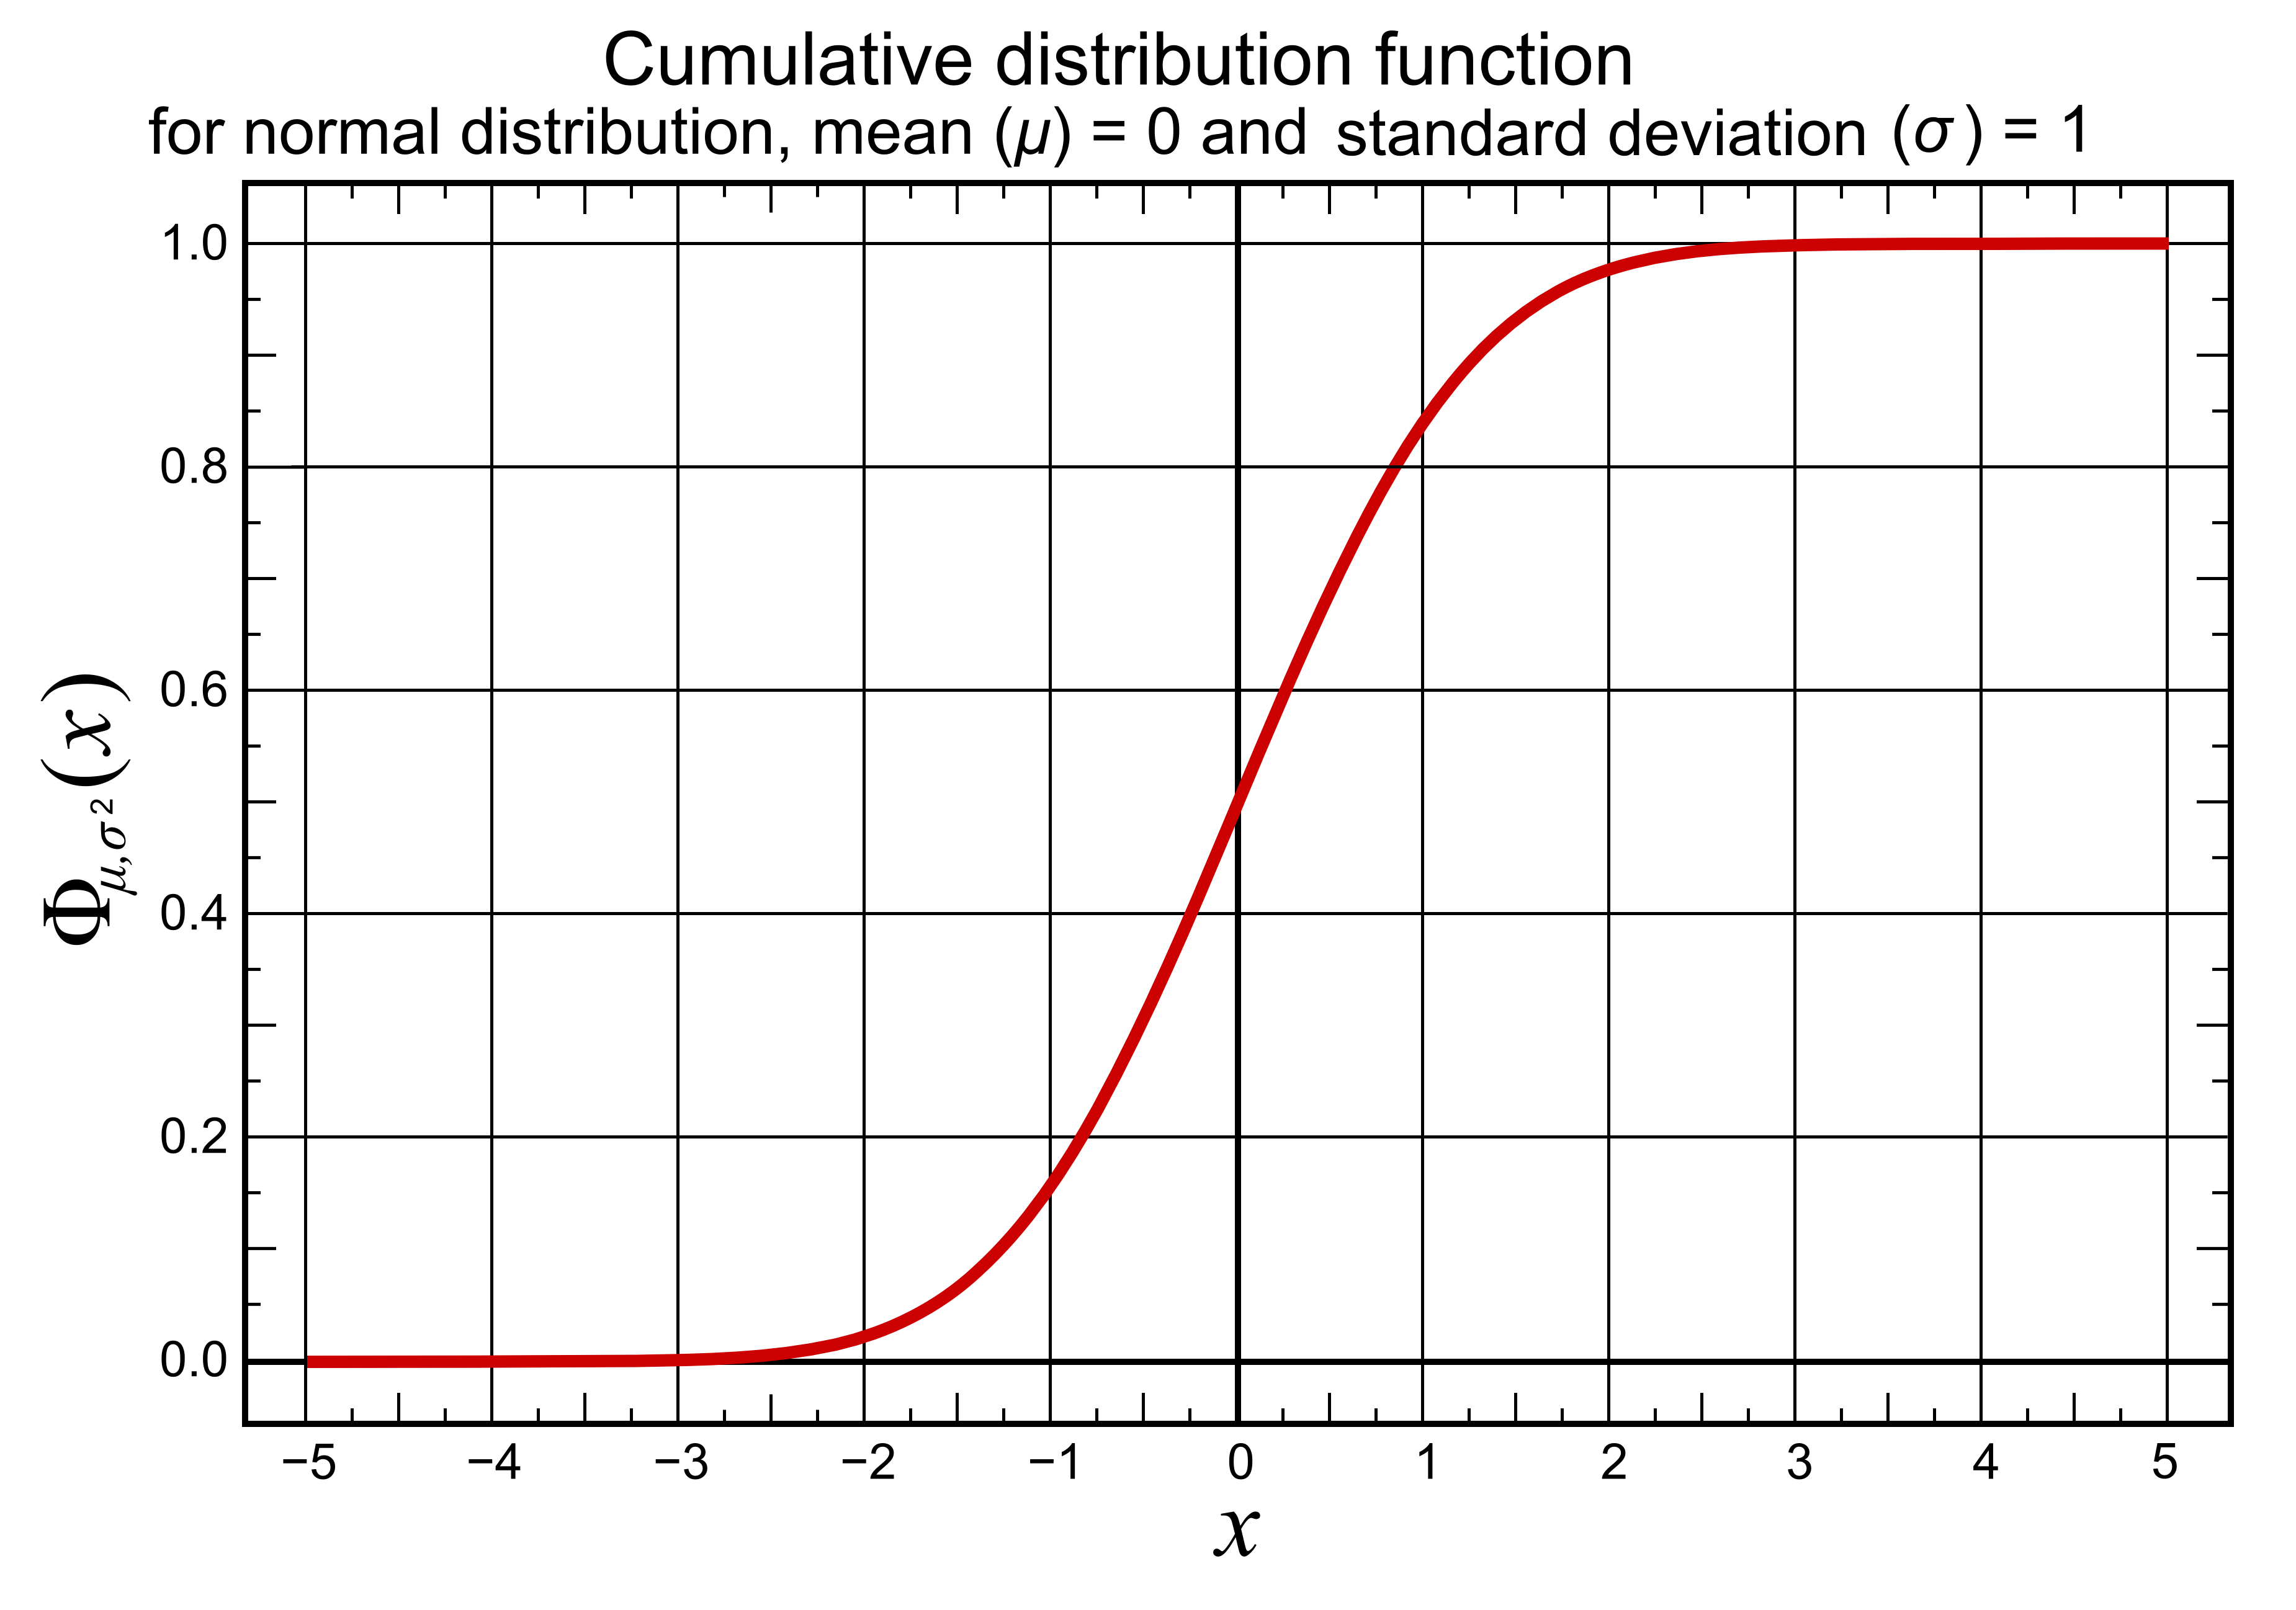 File:cumulative distribution function for normal distribution, mean 0